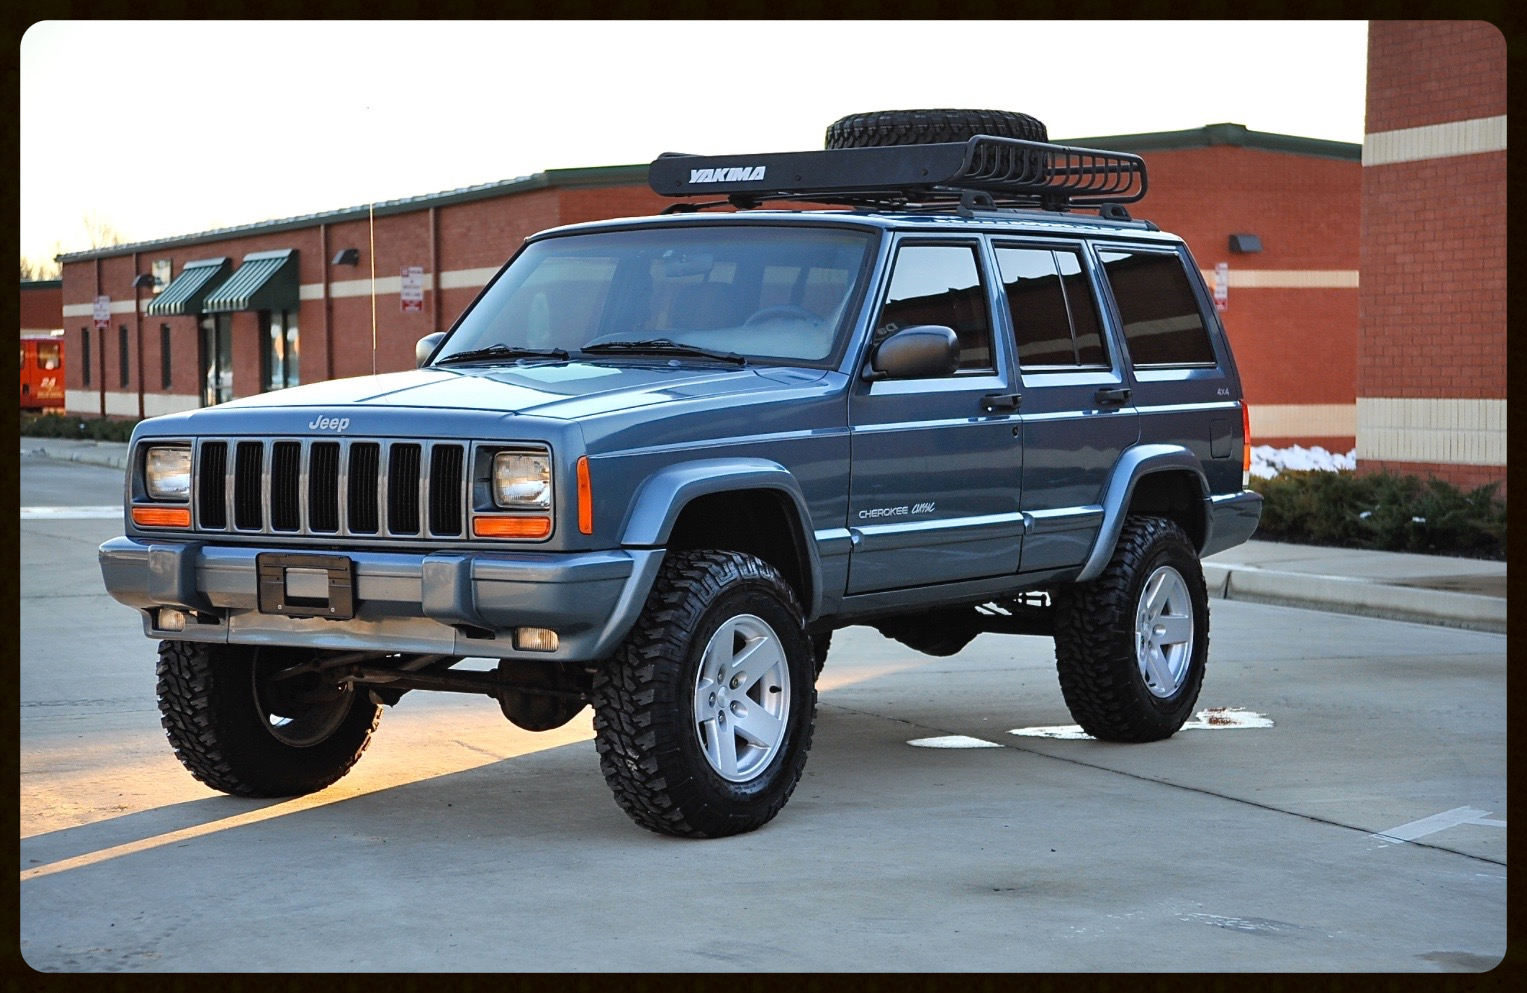 lifted jeep cherokee for sale jeep cherokee xj for sale. Black Bedroom Furniture Sets. Home Design Ideas